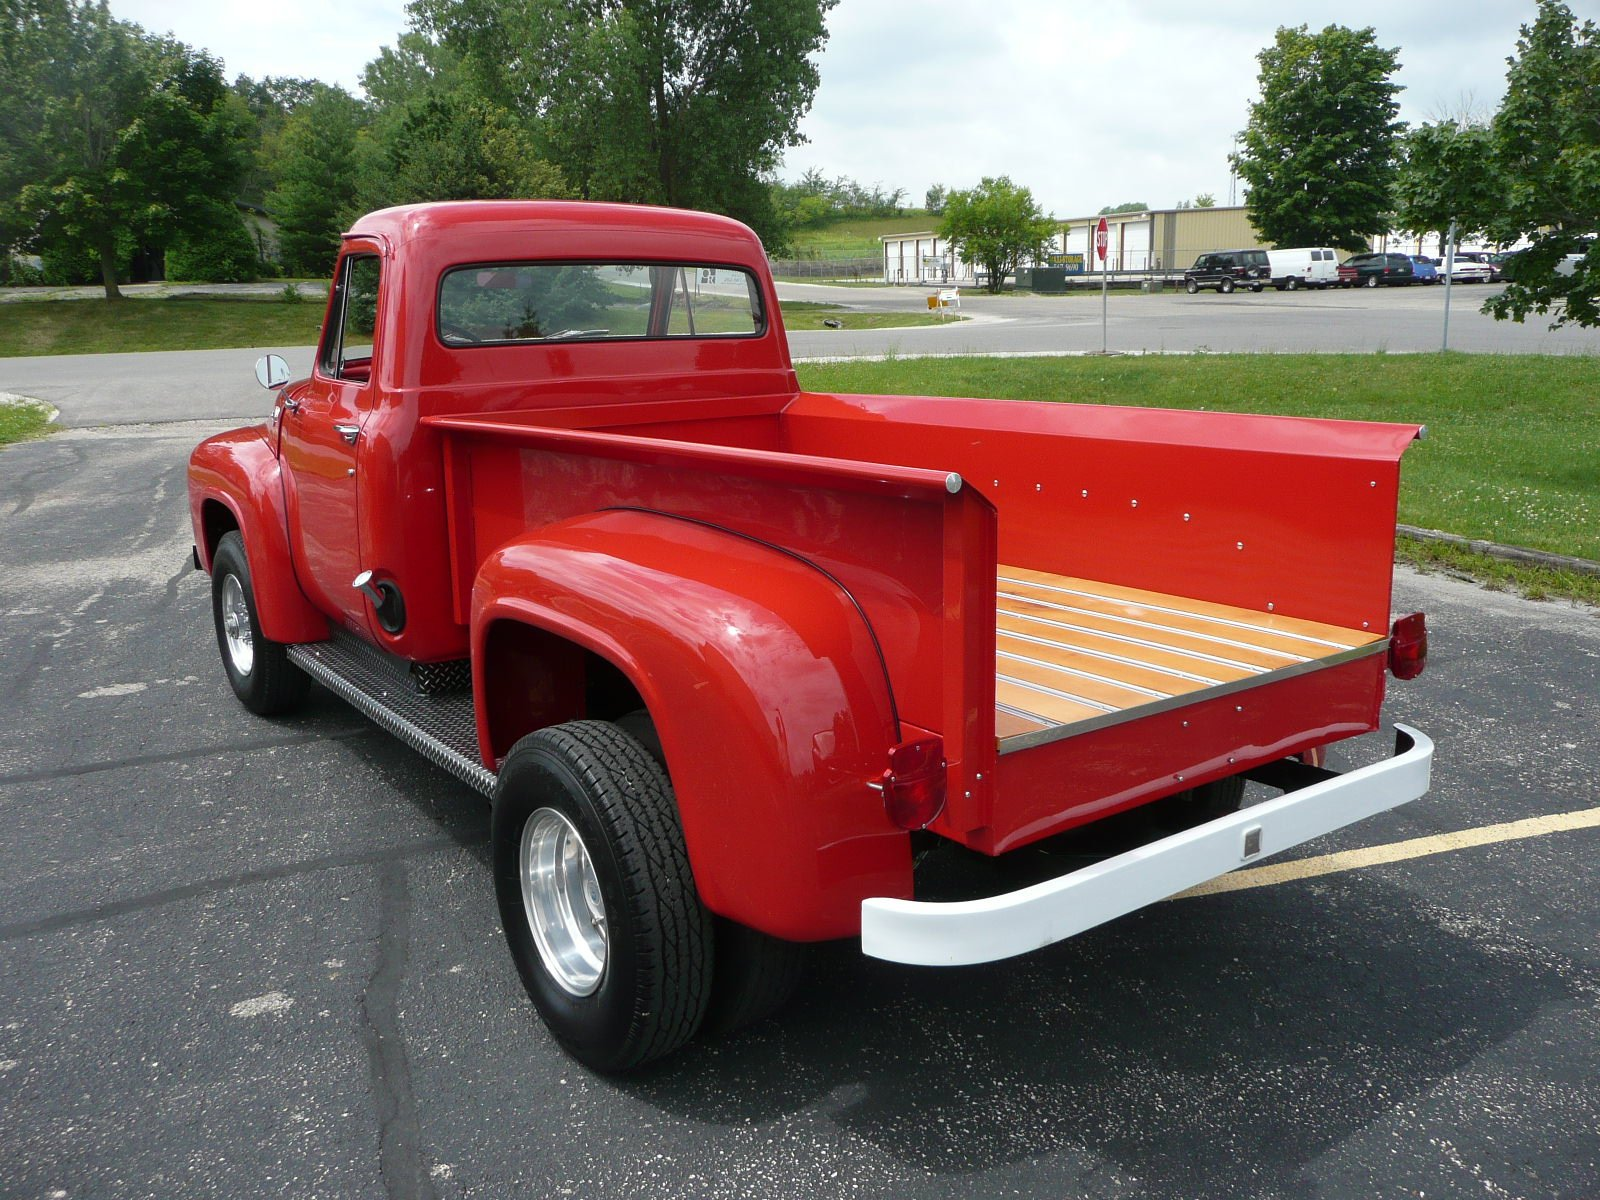 1953 ford f100 4x4 dually usa 1600x1200 04 wallpaper 1600x1200 664036 wallpaperup